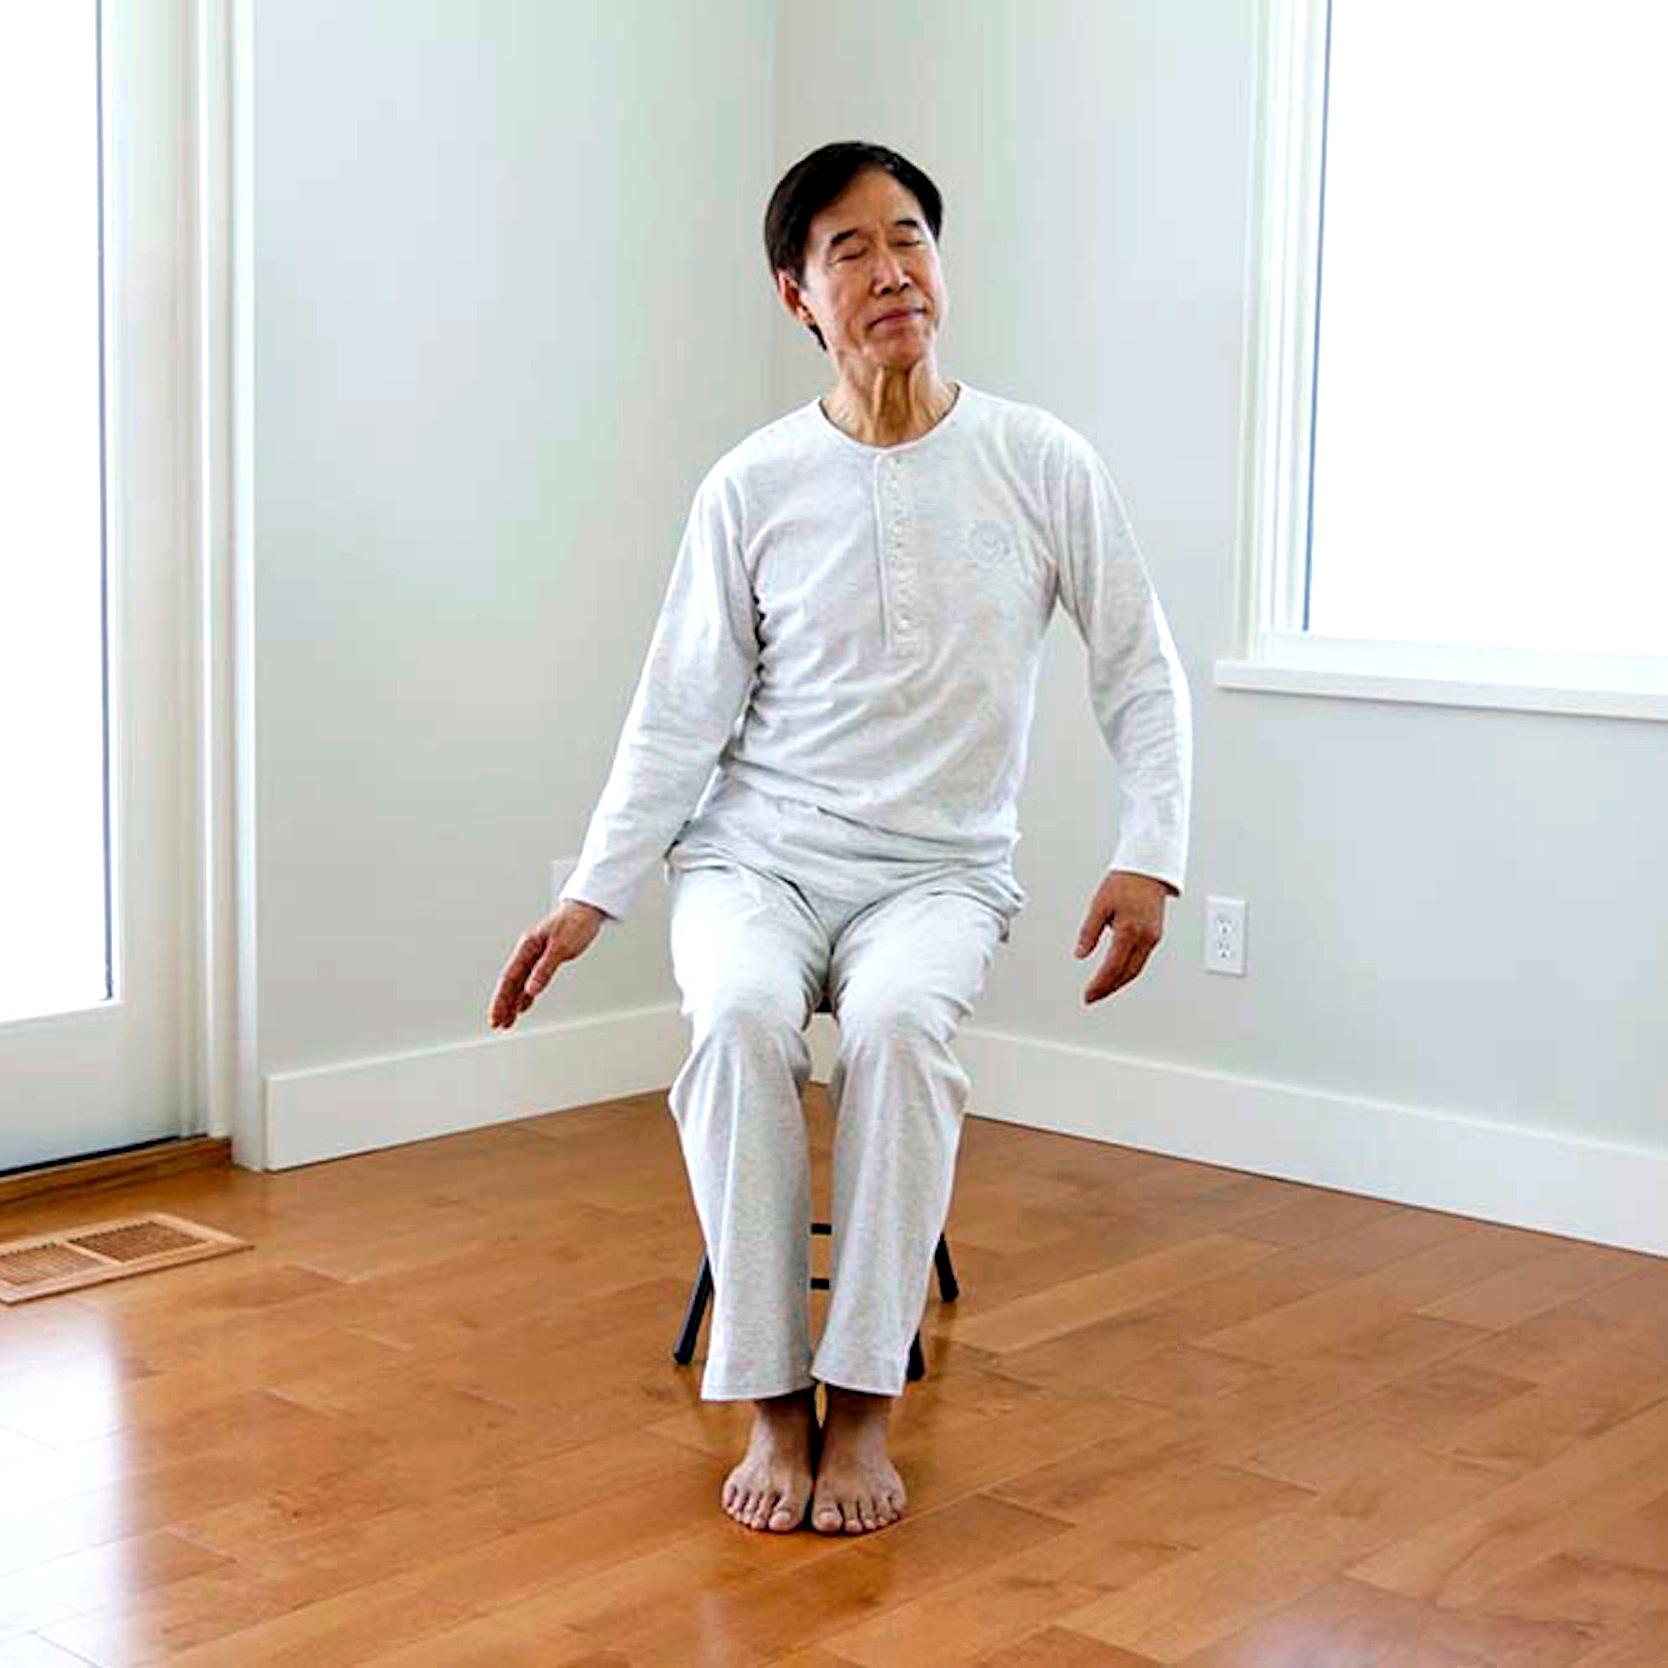 Light of Purity - and advanced form of Sheng Zhen Meditation